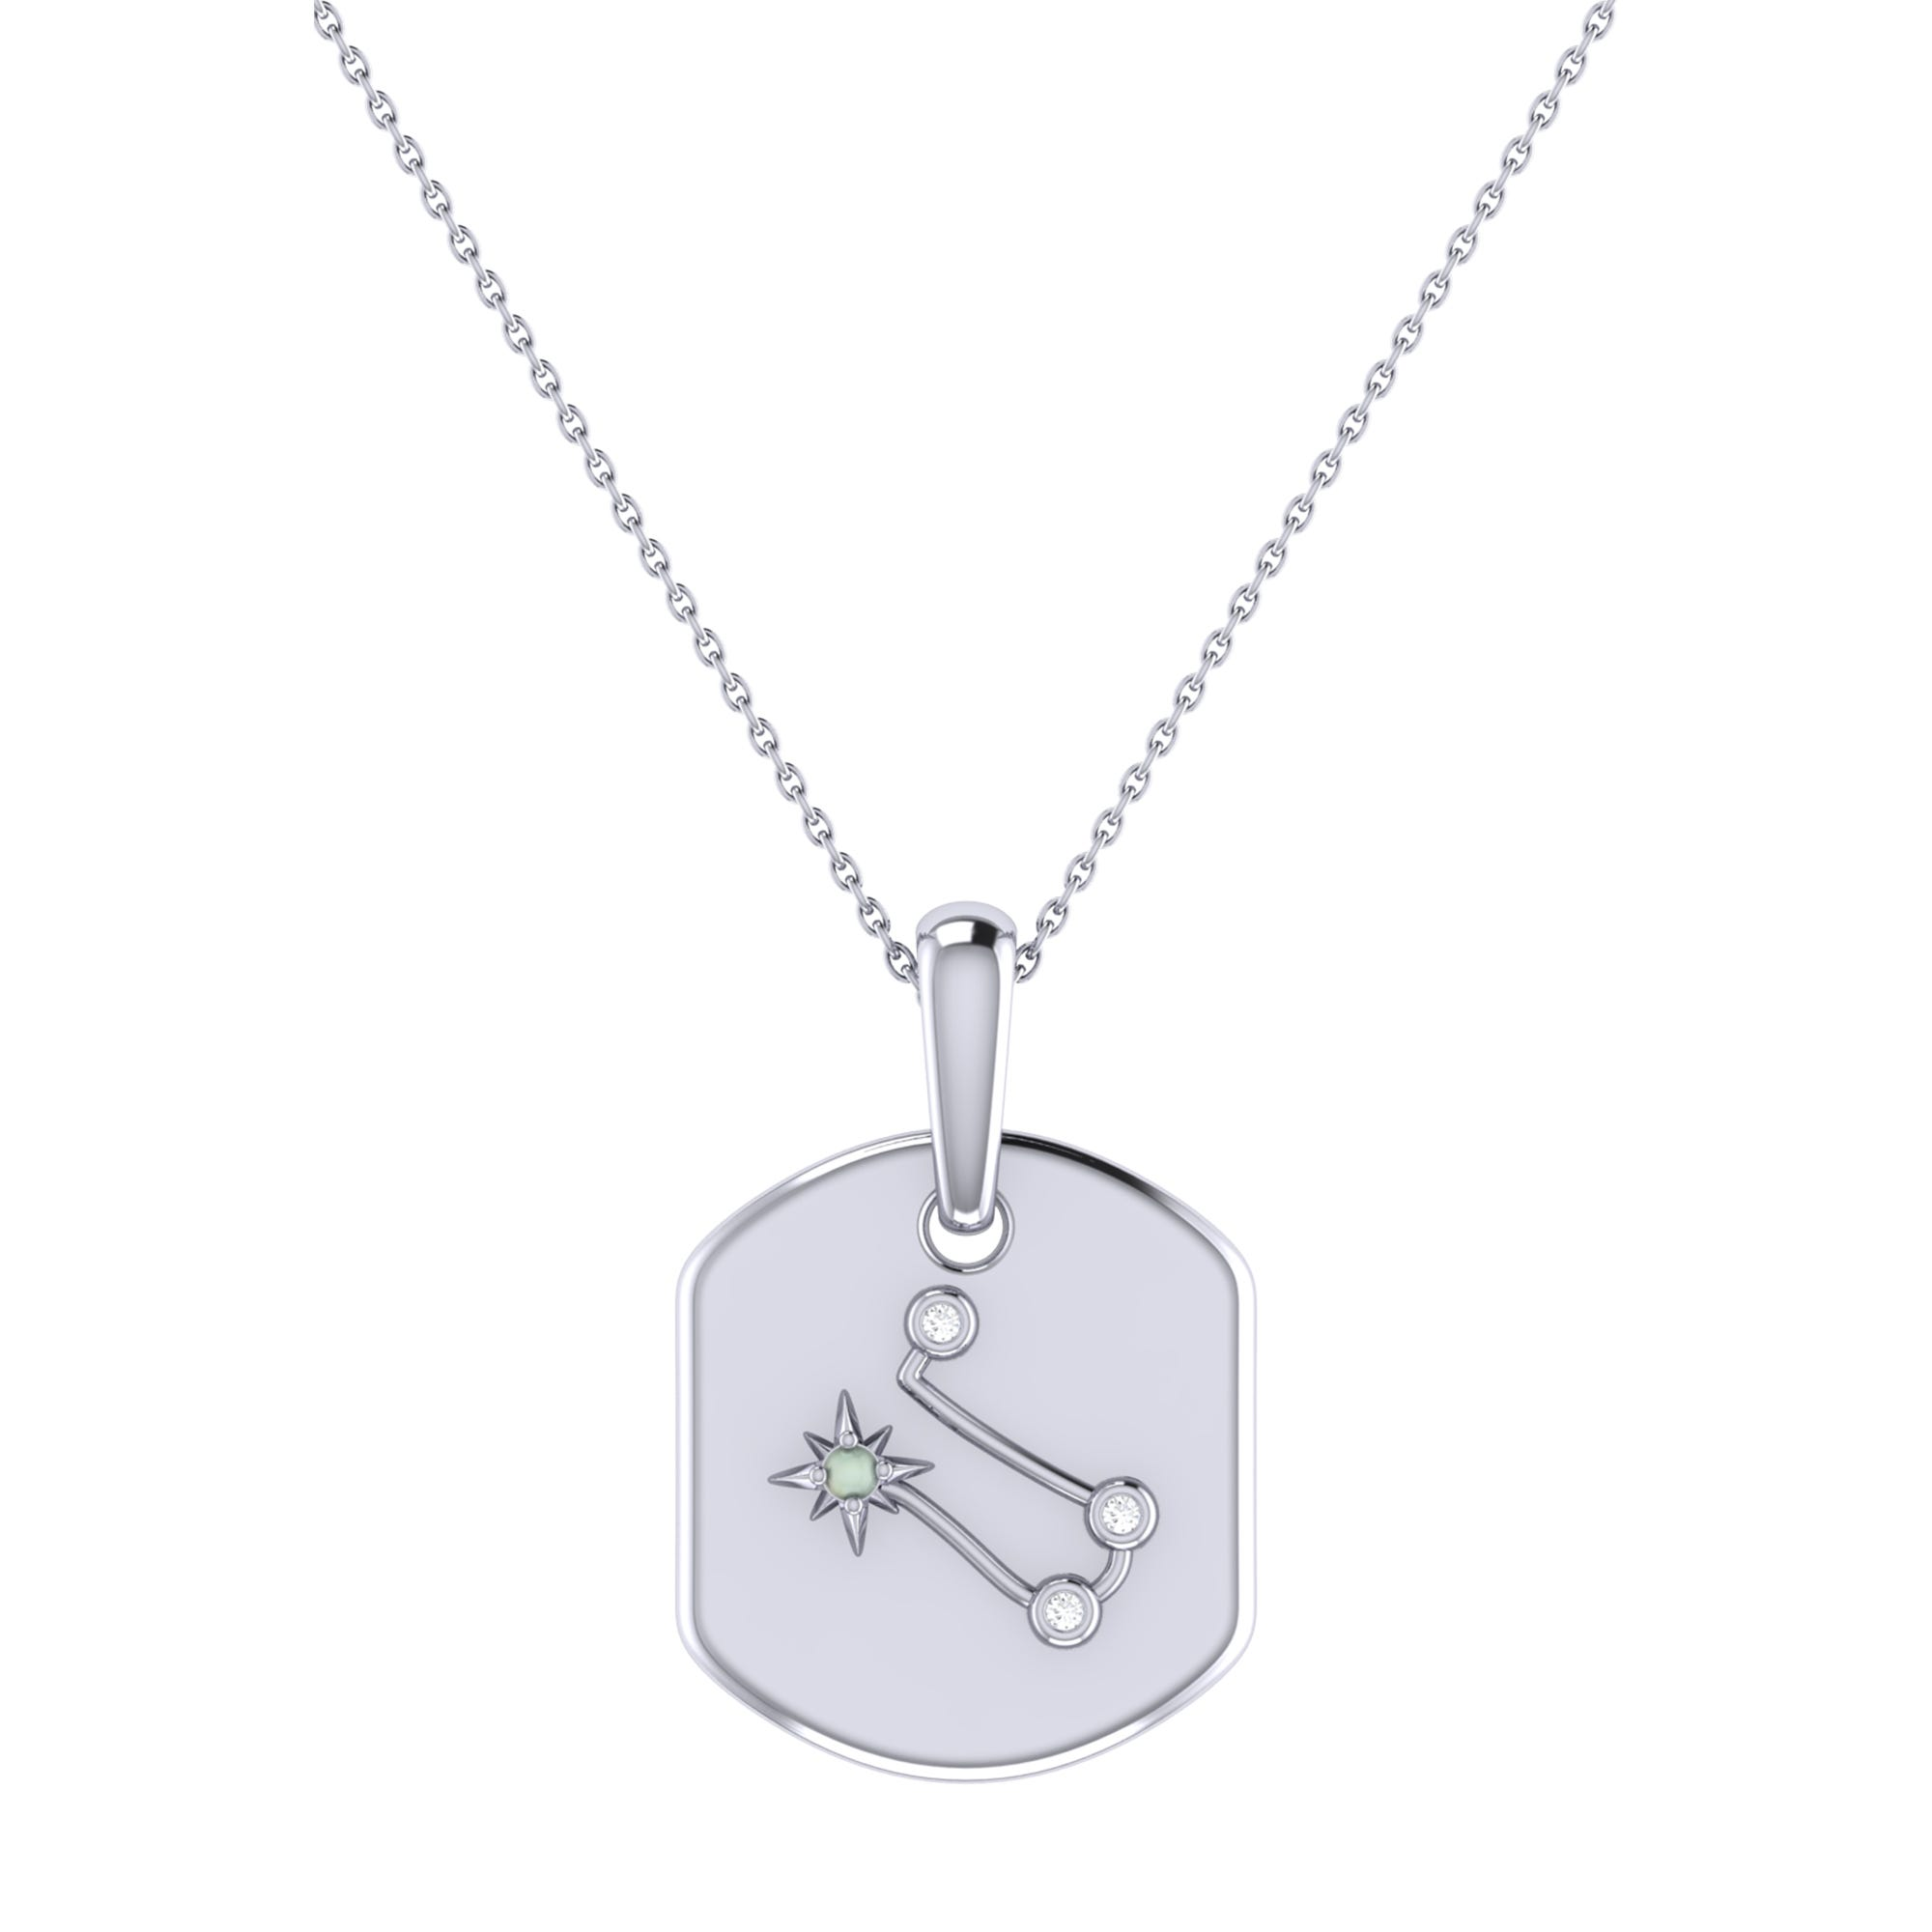 Diamond and Moonstone Gemini Constellation Tag Necklace in Sterling Silver